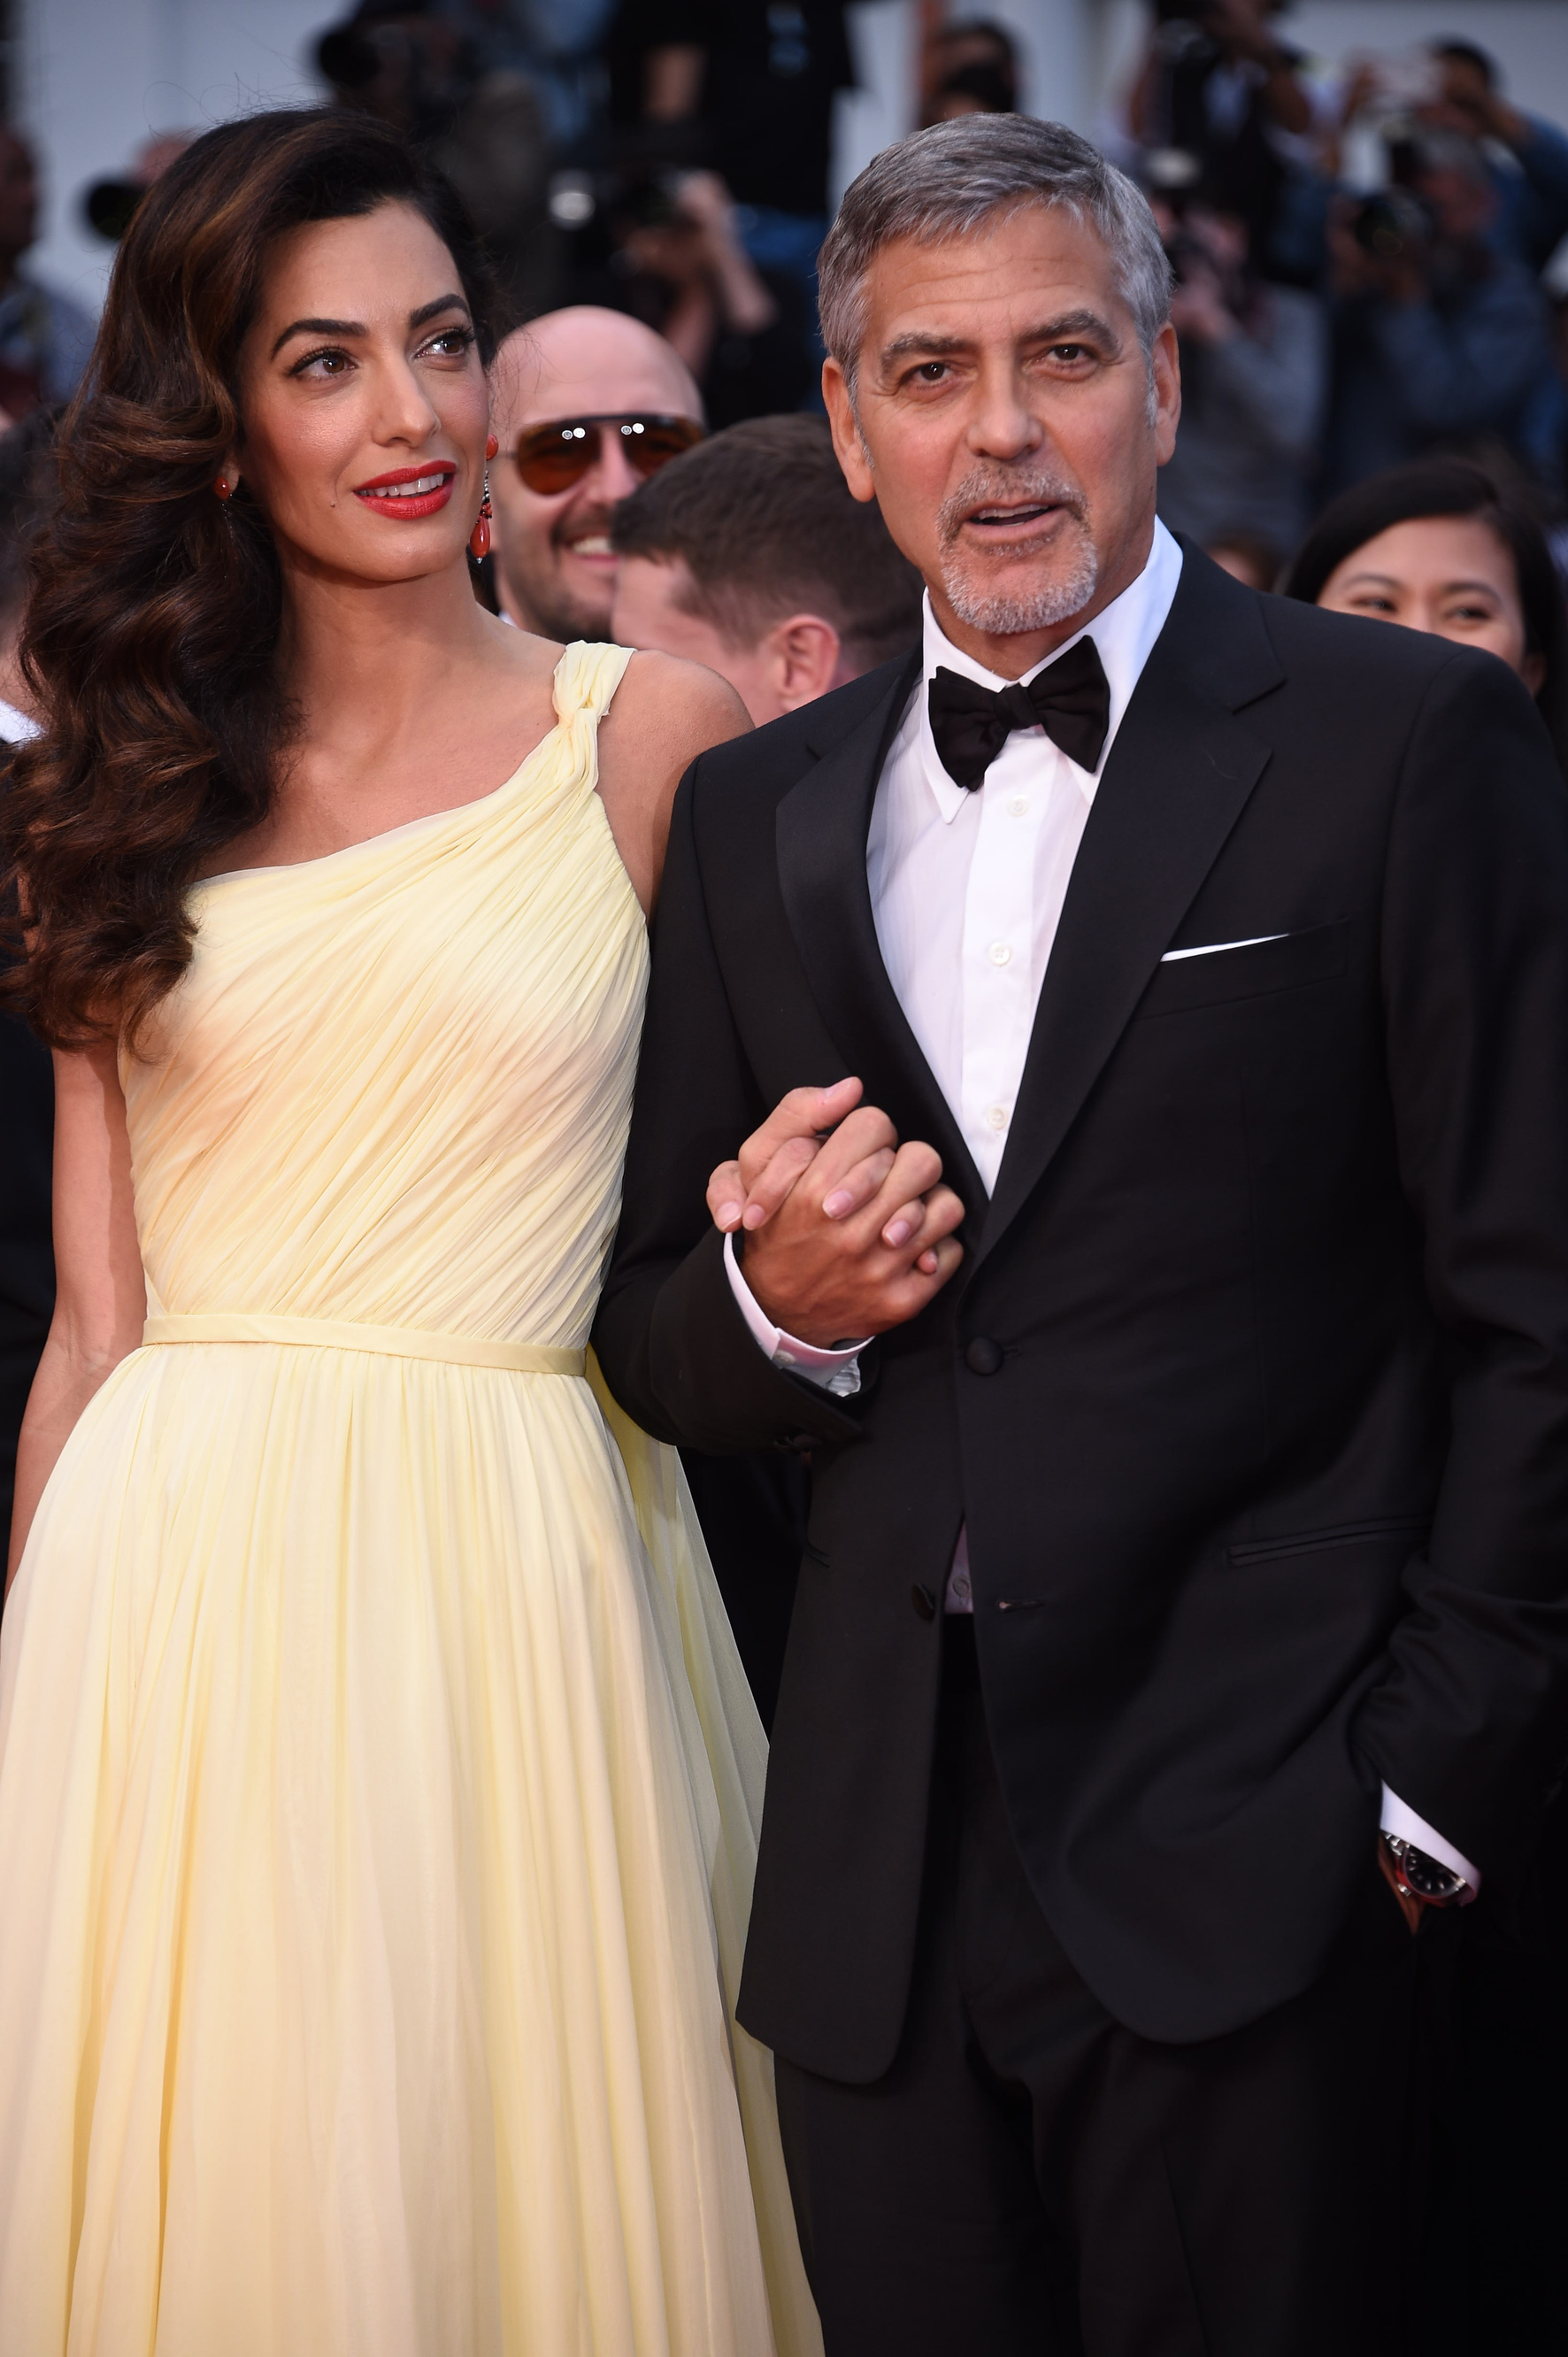 George Clooney Wants Plastic Surgery for Saggy Face - Amal Clooney Shuts It Down - Will He Cave to Young Wife or Go Under Knife?